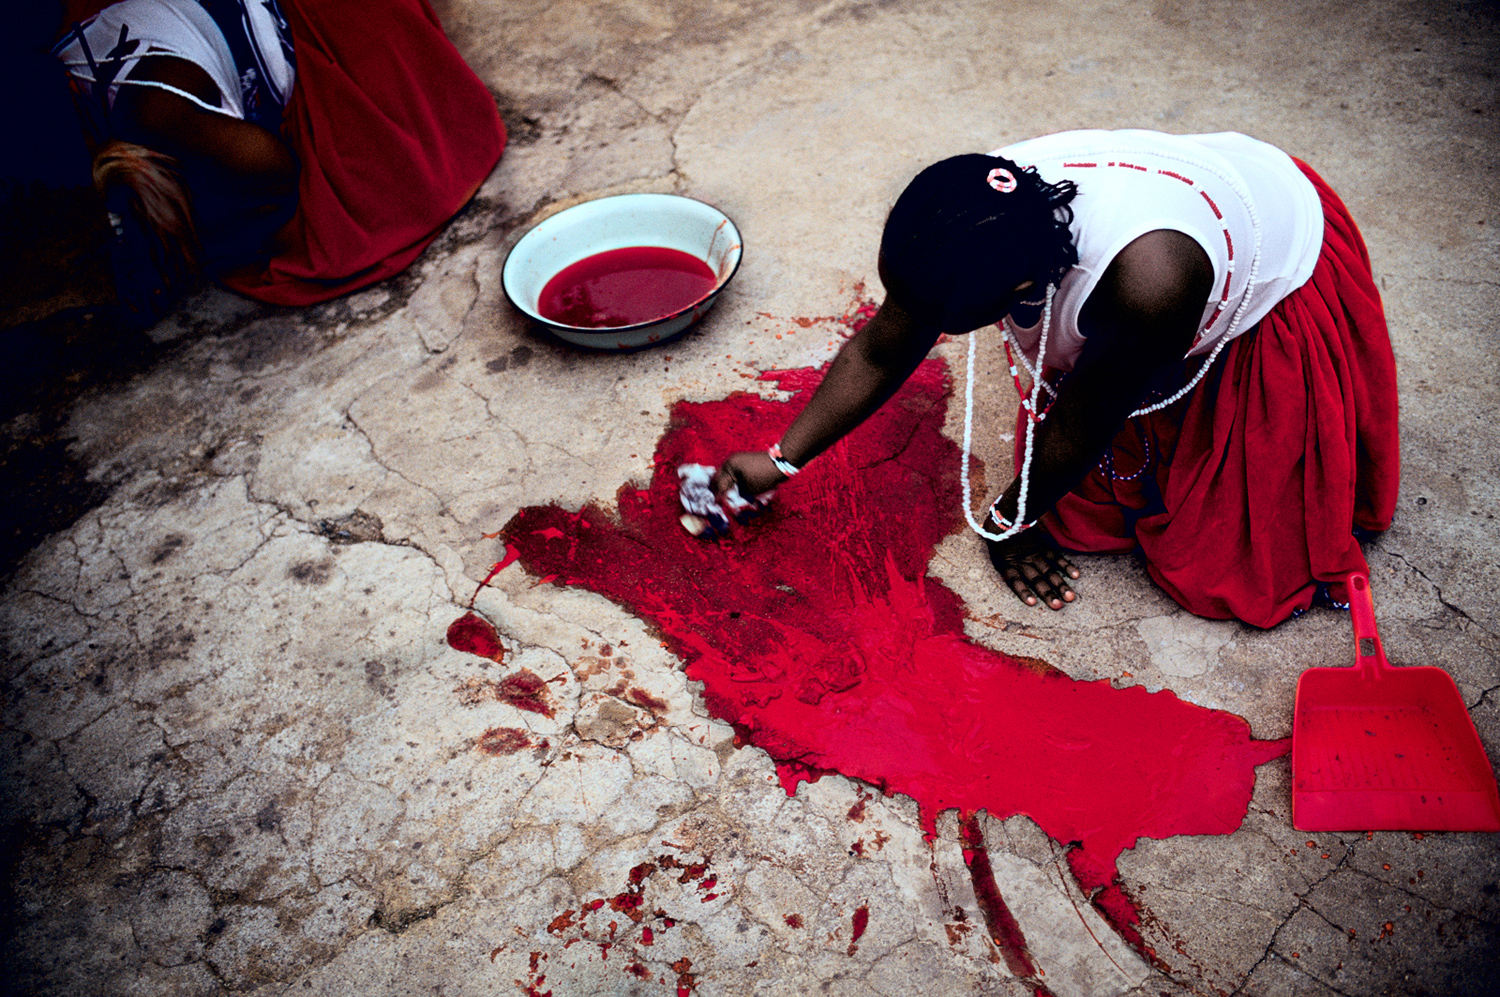 A woman cleans up the blood of a newly slaughtered goat, May 2005. She is graduating from a Sangoma ceremony in Soweto, South Africa. Many black South Africans consult a Sangoma, or traditional healer, who communicates with the ancestral spirits for guidance on treating patients and often prescribes herbal remedies.